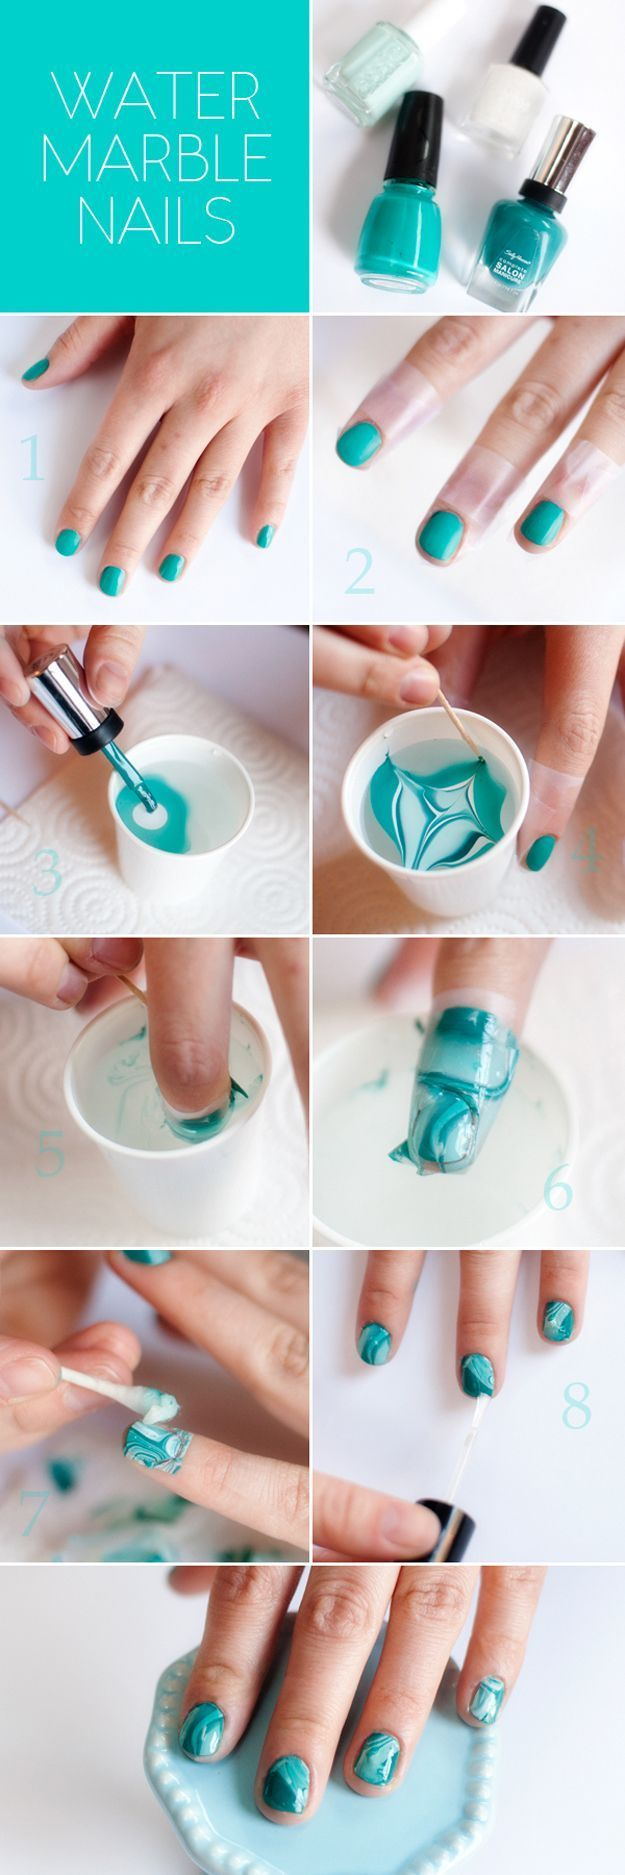 33 Unbelievably Cool Nail Art Ideas Diy Nails Pinterest Make